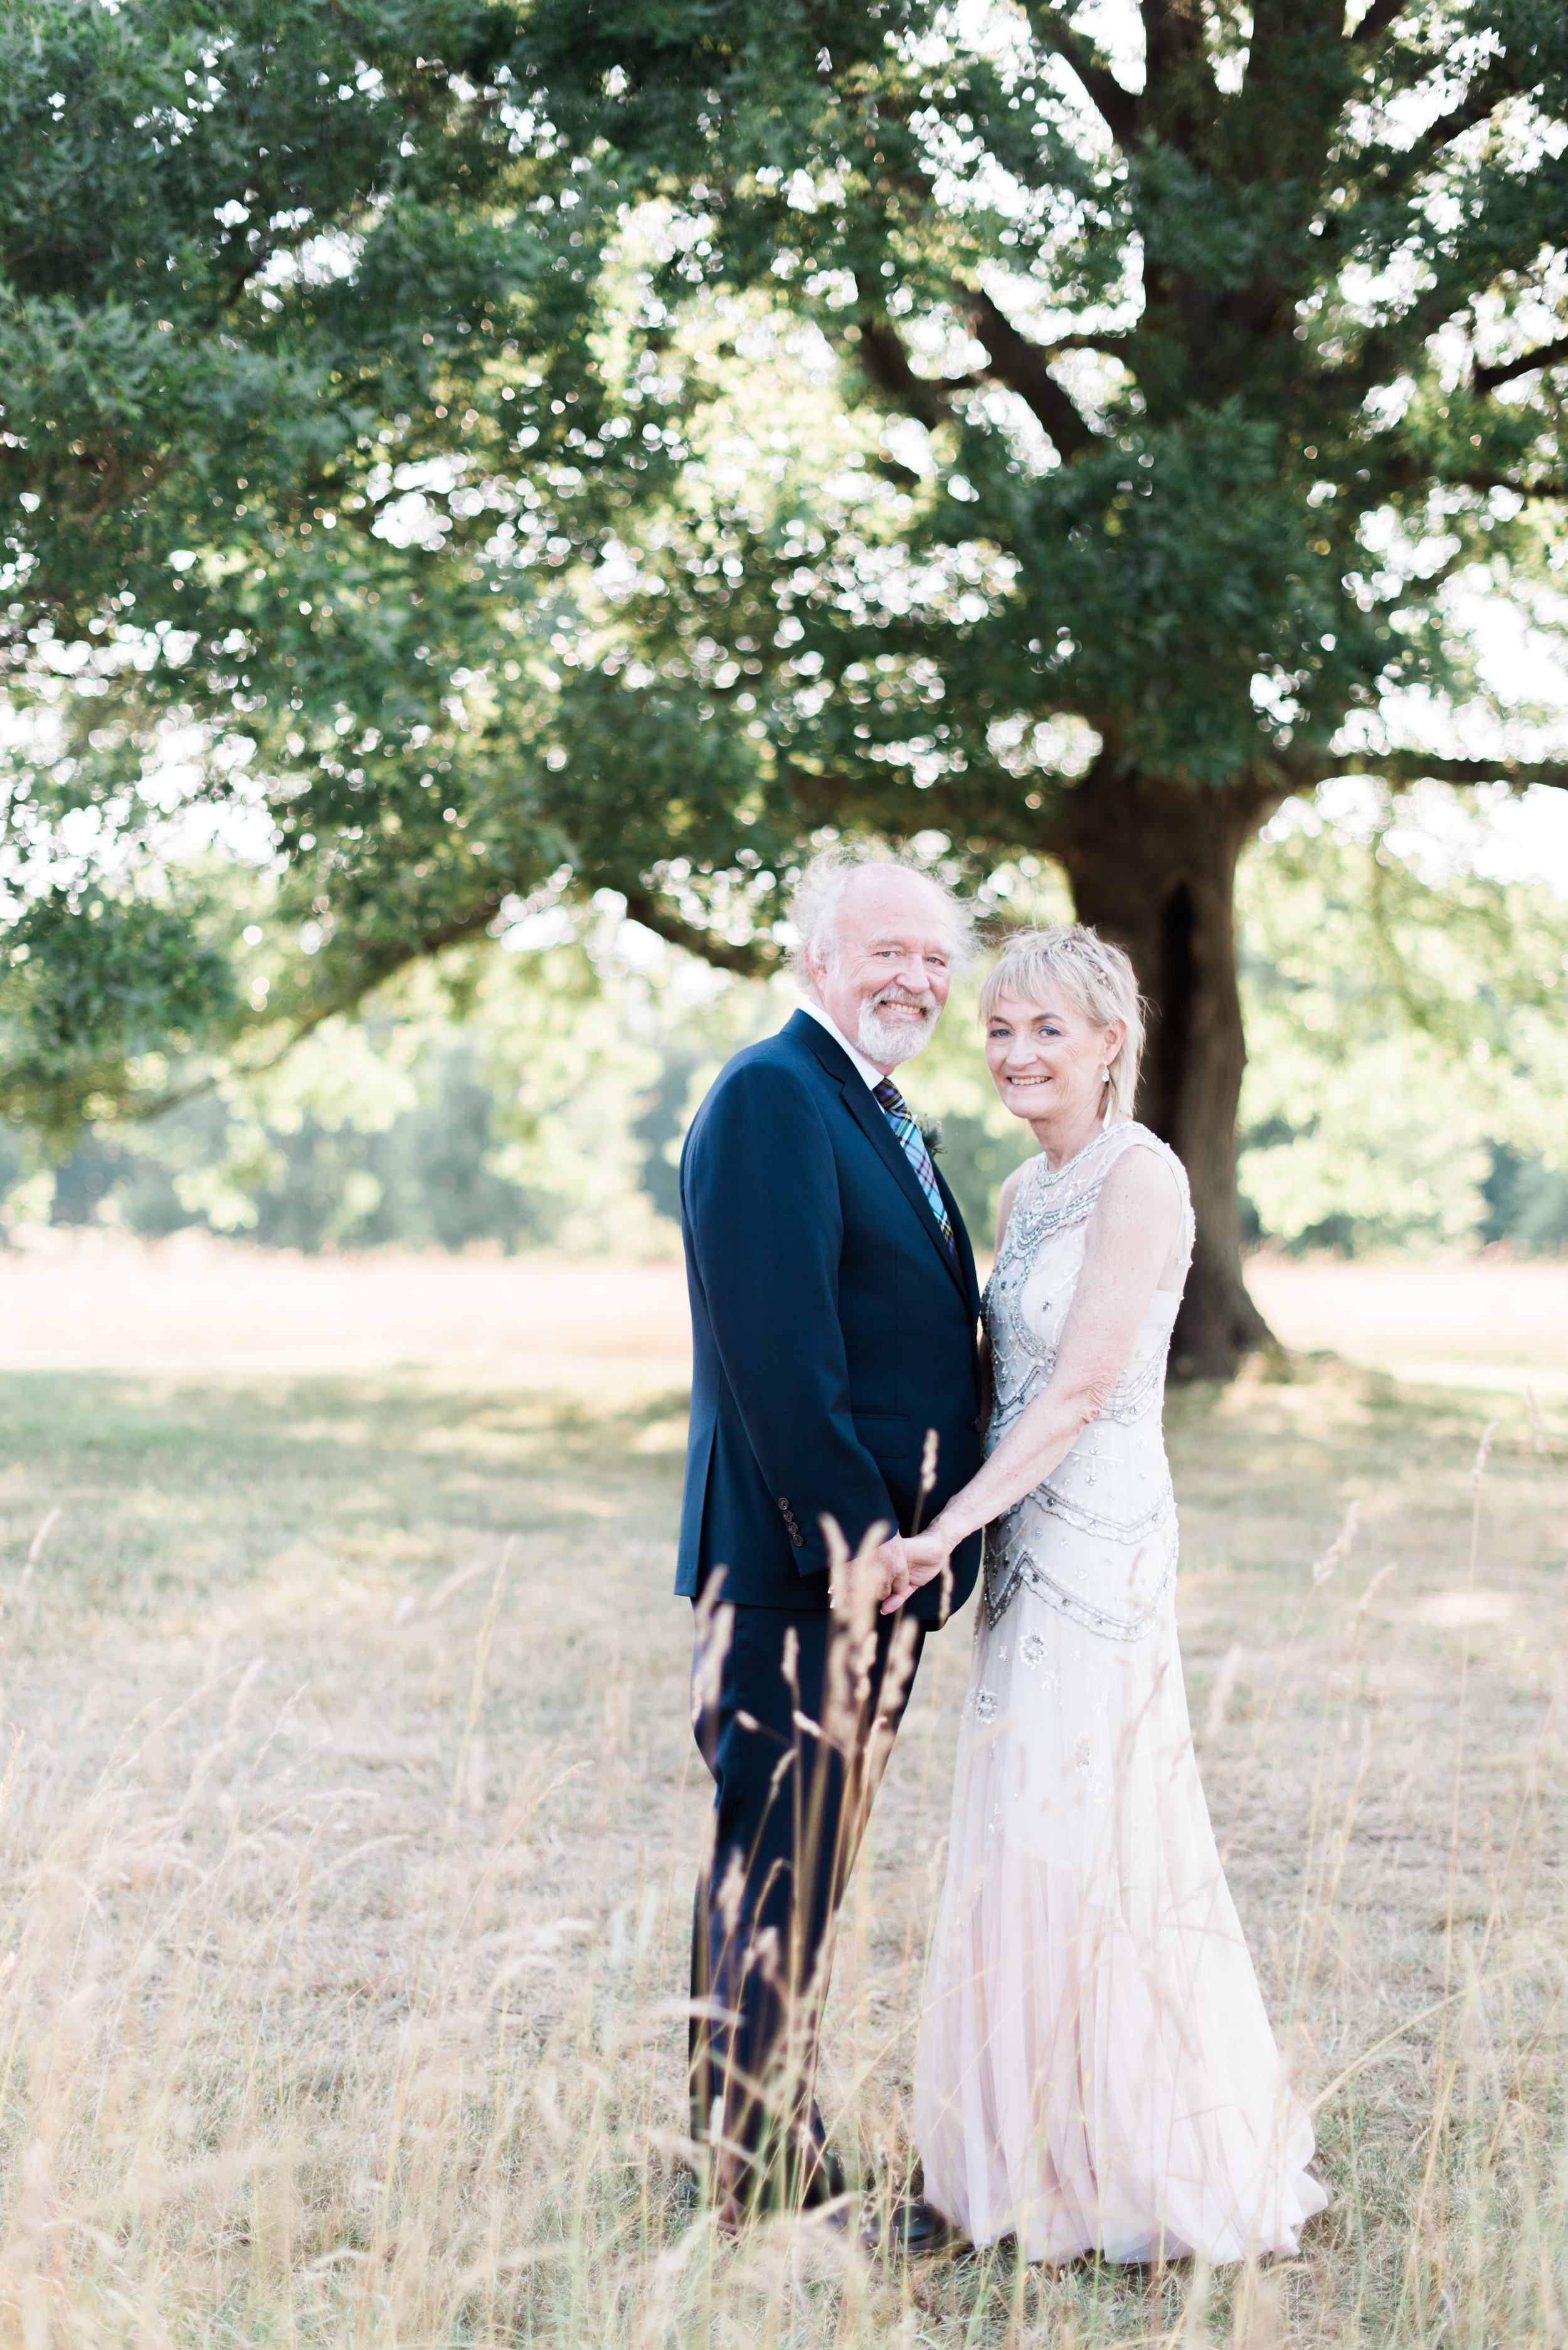 Wedding Photography in the Berkshires